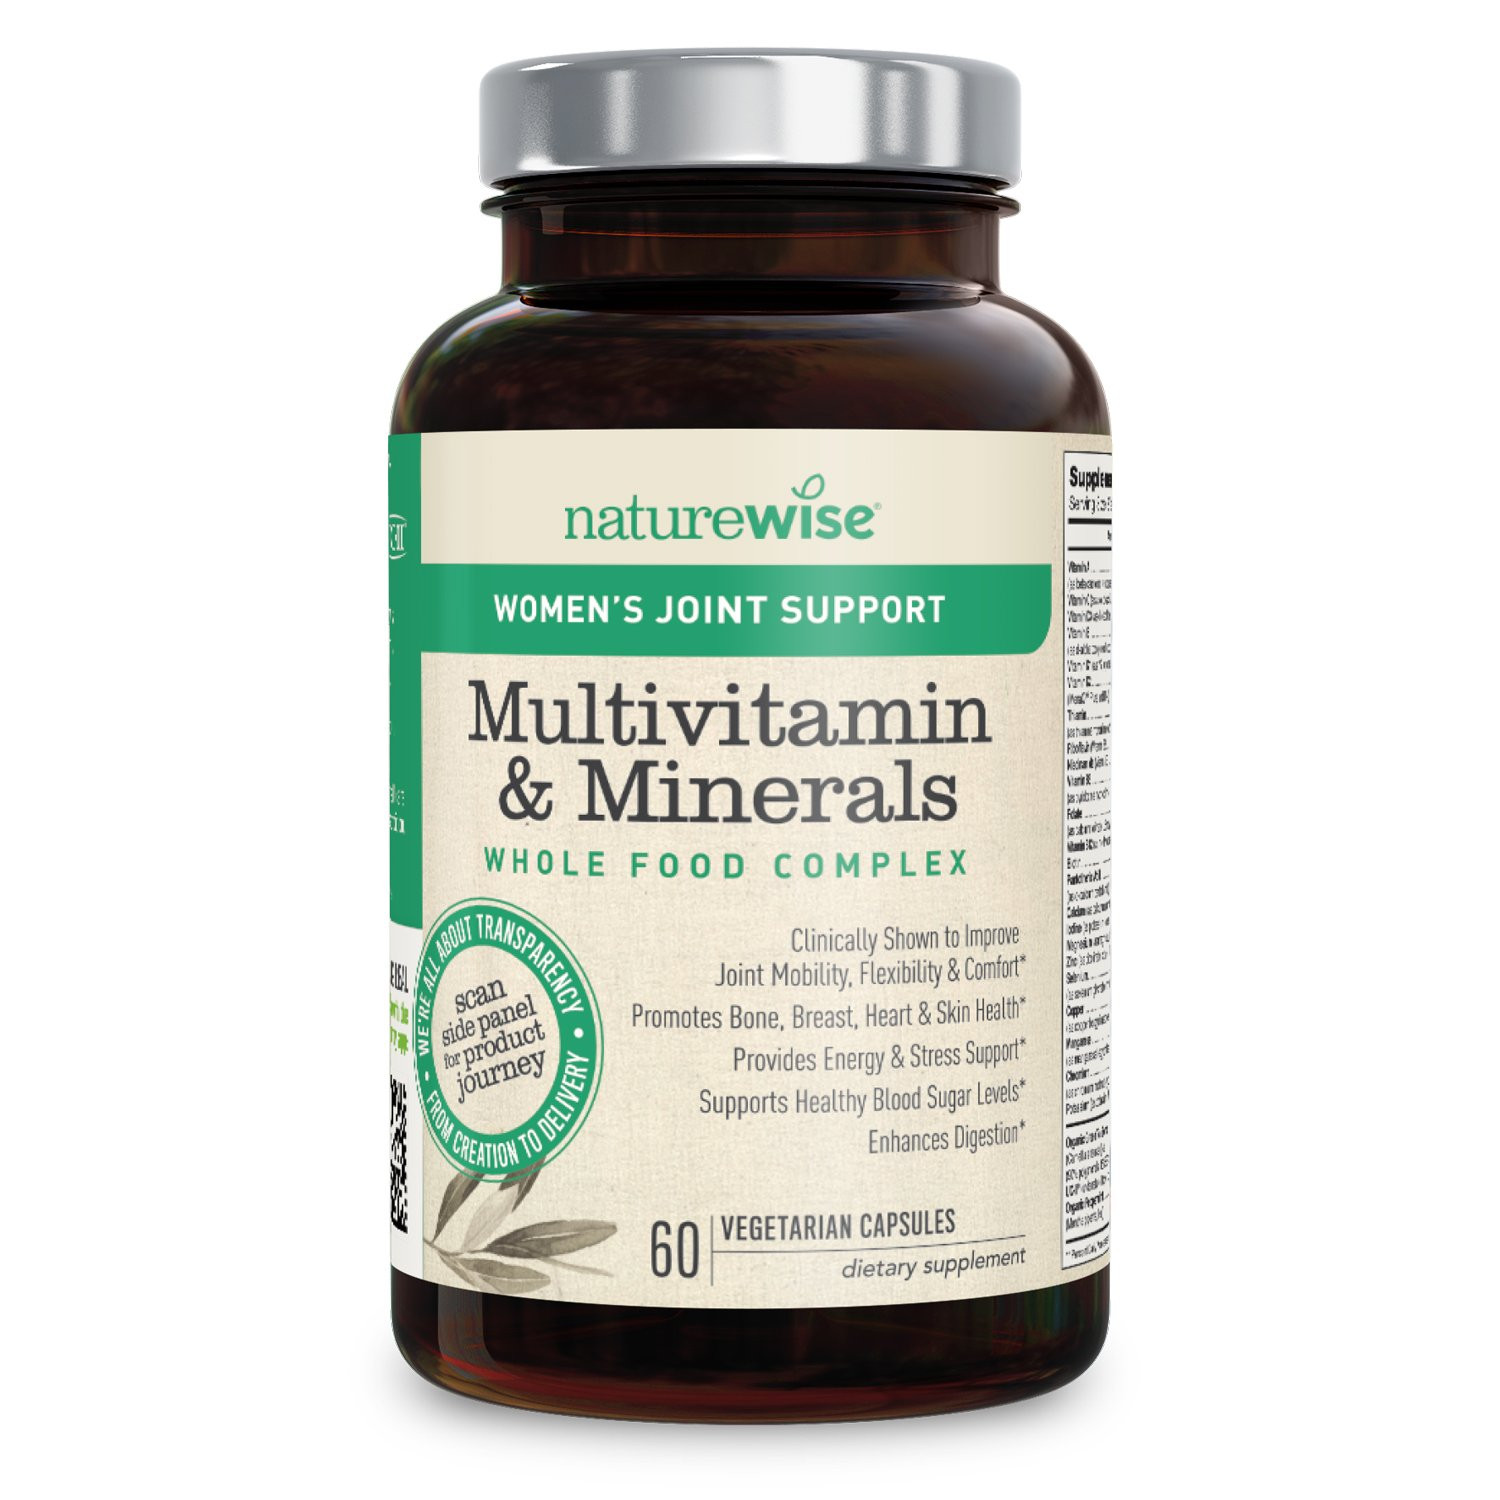 NatureWise Joint Support Multivitamin for Women — Whole Foods plex with Vitamins & Minerals for Healthy